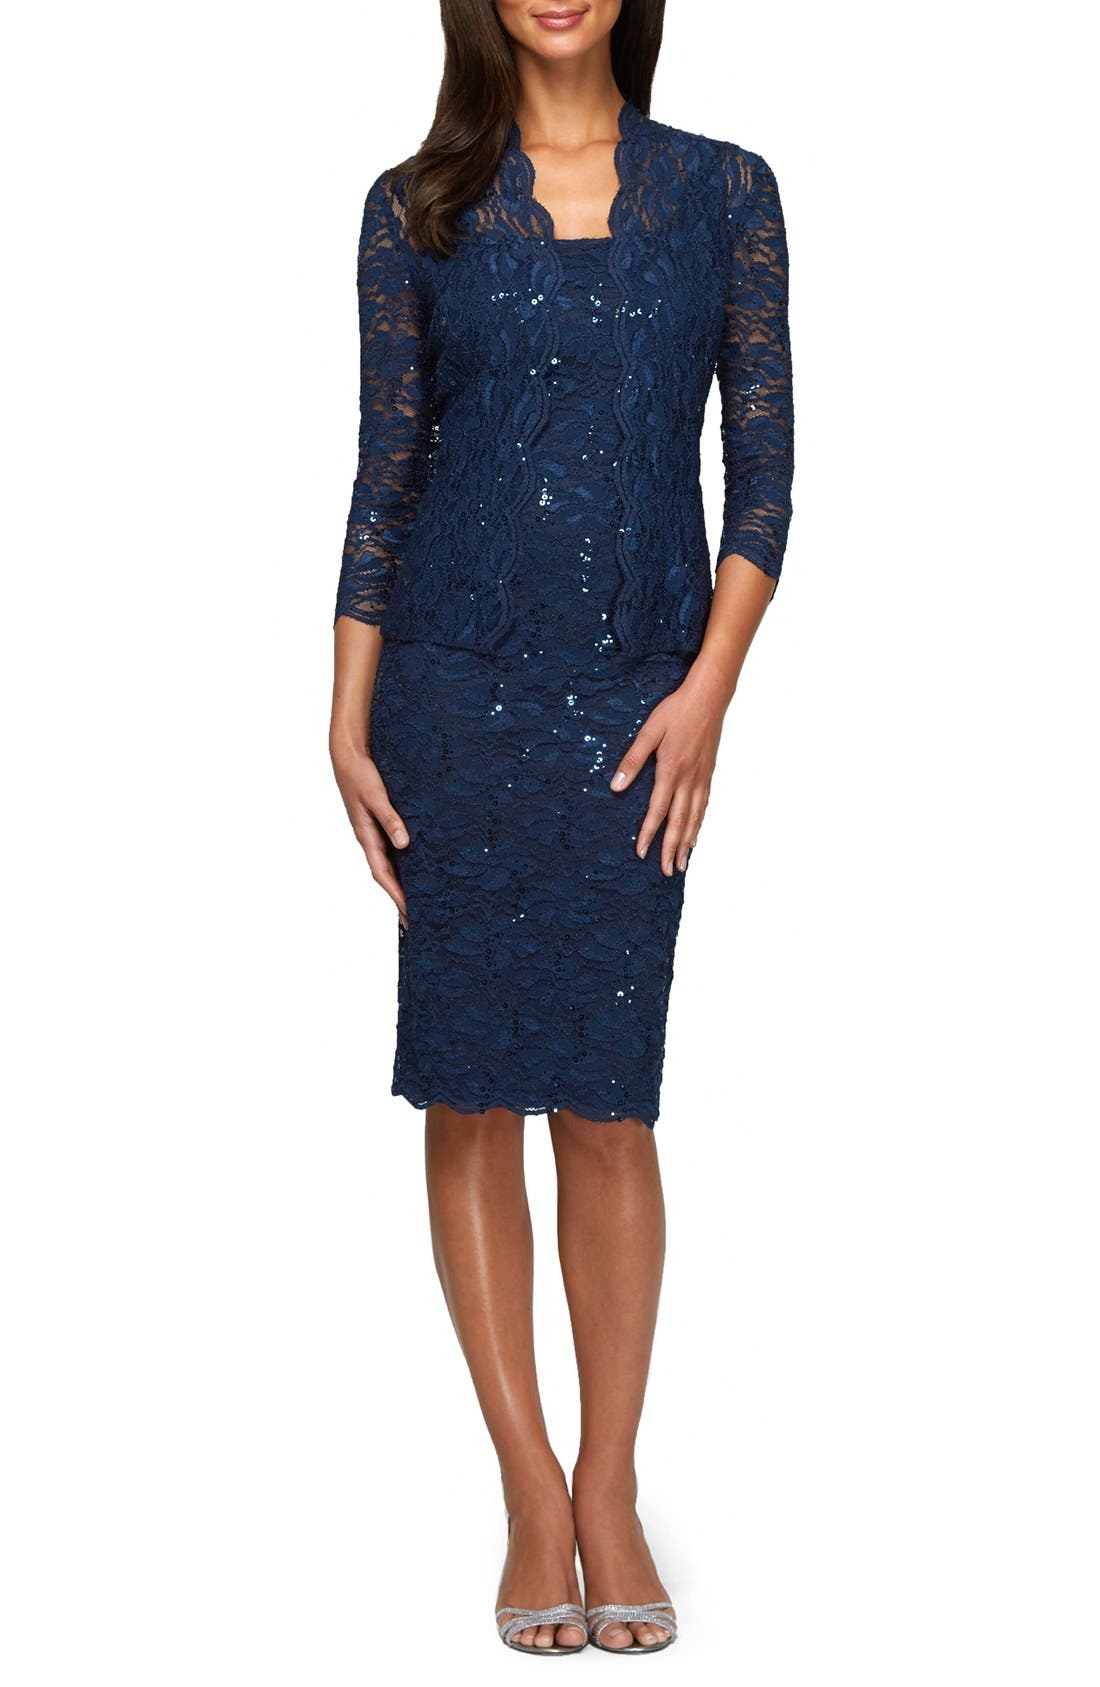 Alternate Image 1 Selected - Alex Evenings Lace Dress & Jacket (Regular & Petite)